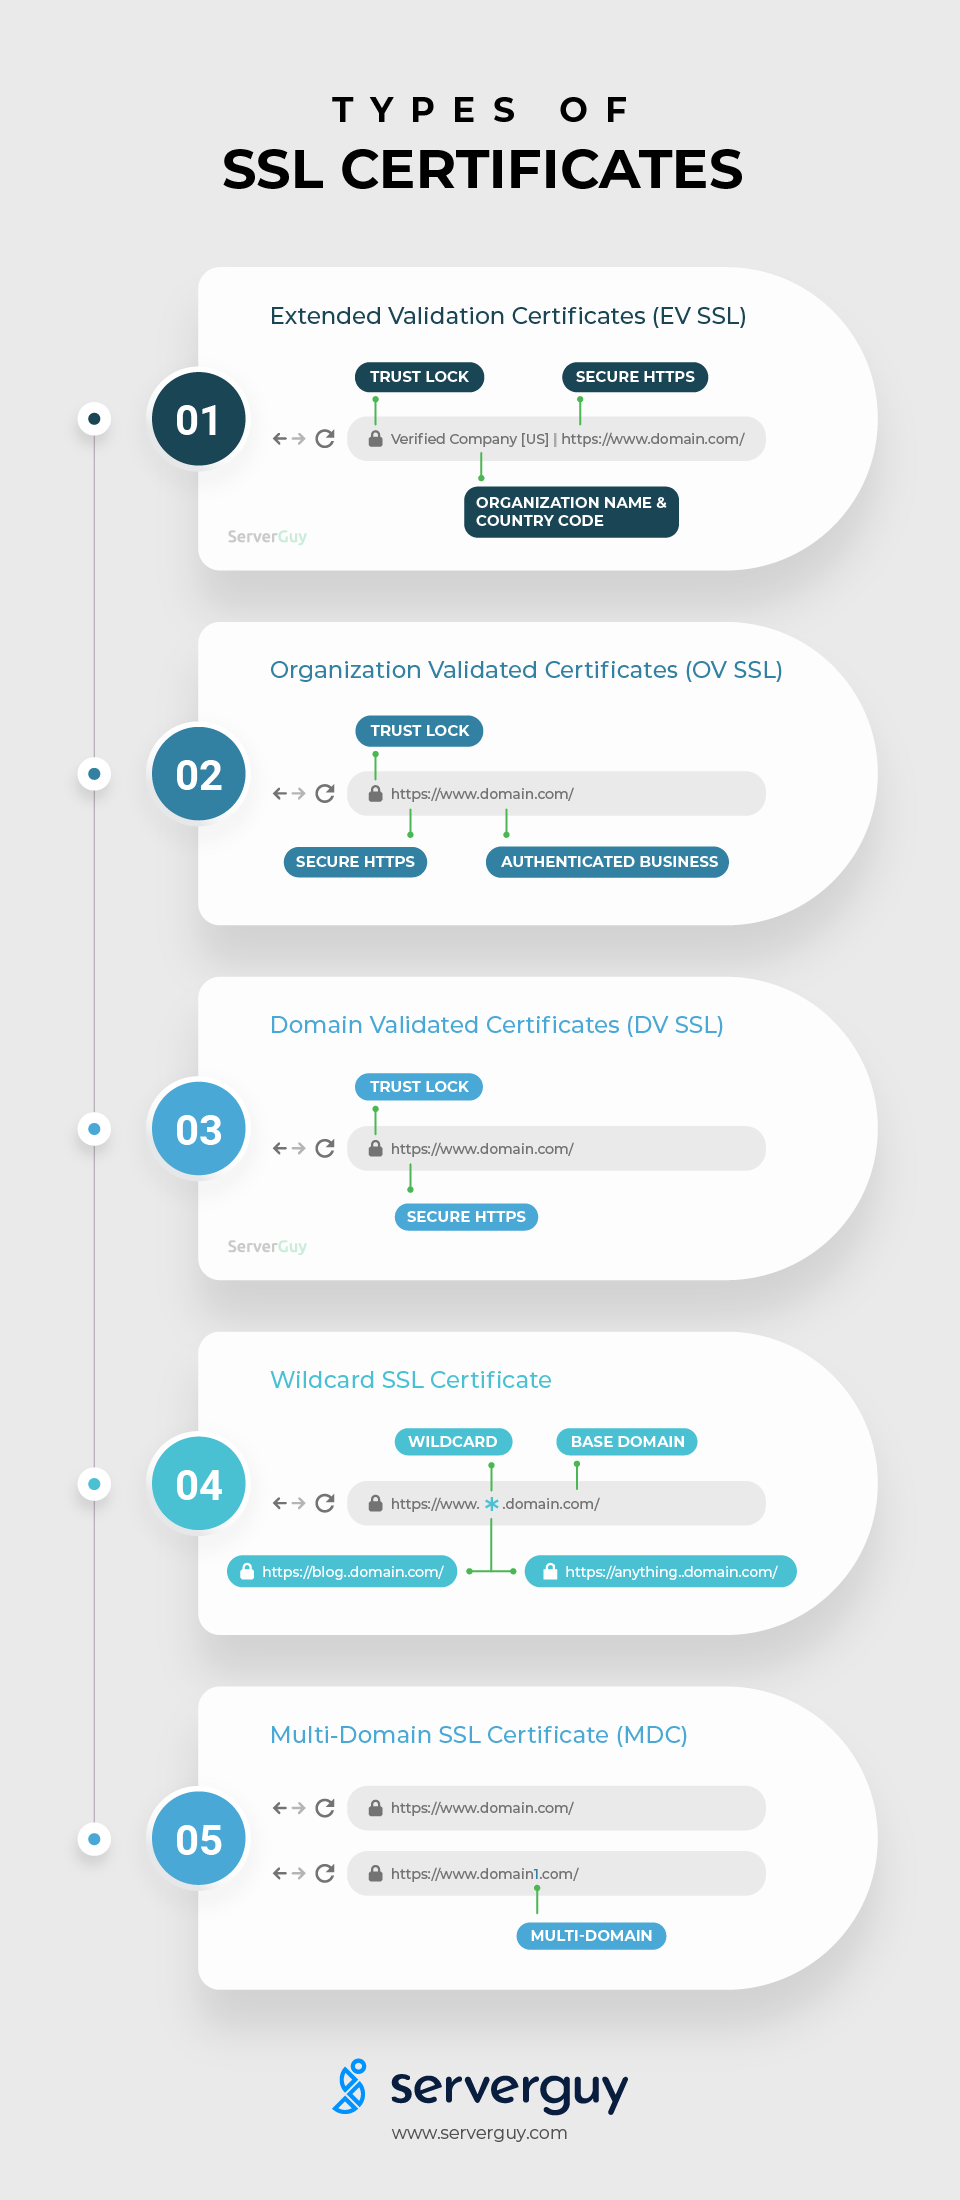 Types of SSL Certificates for a Secure Business Website